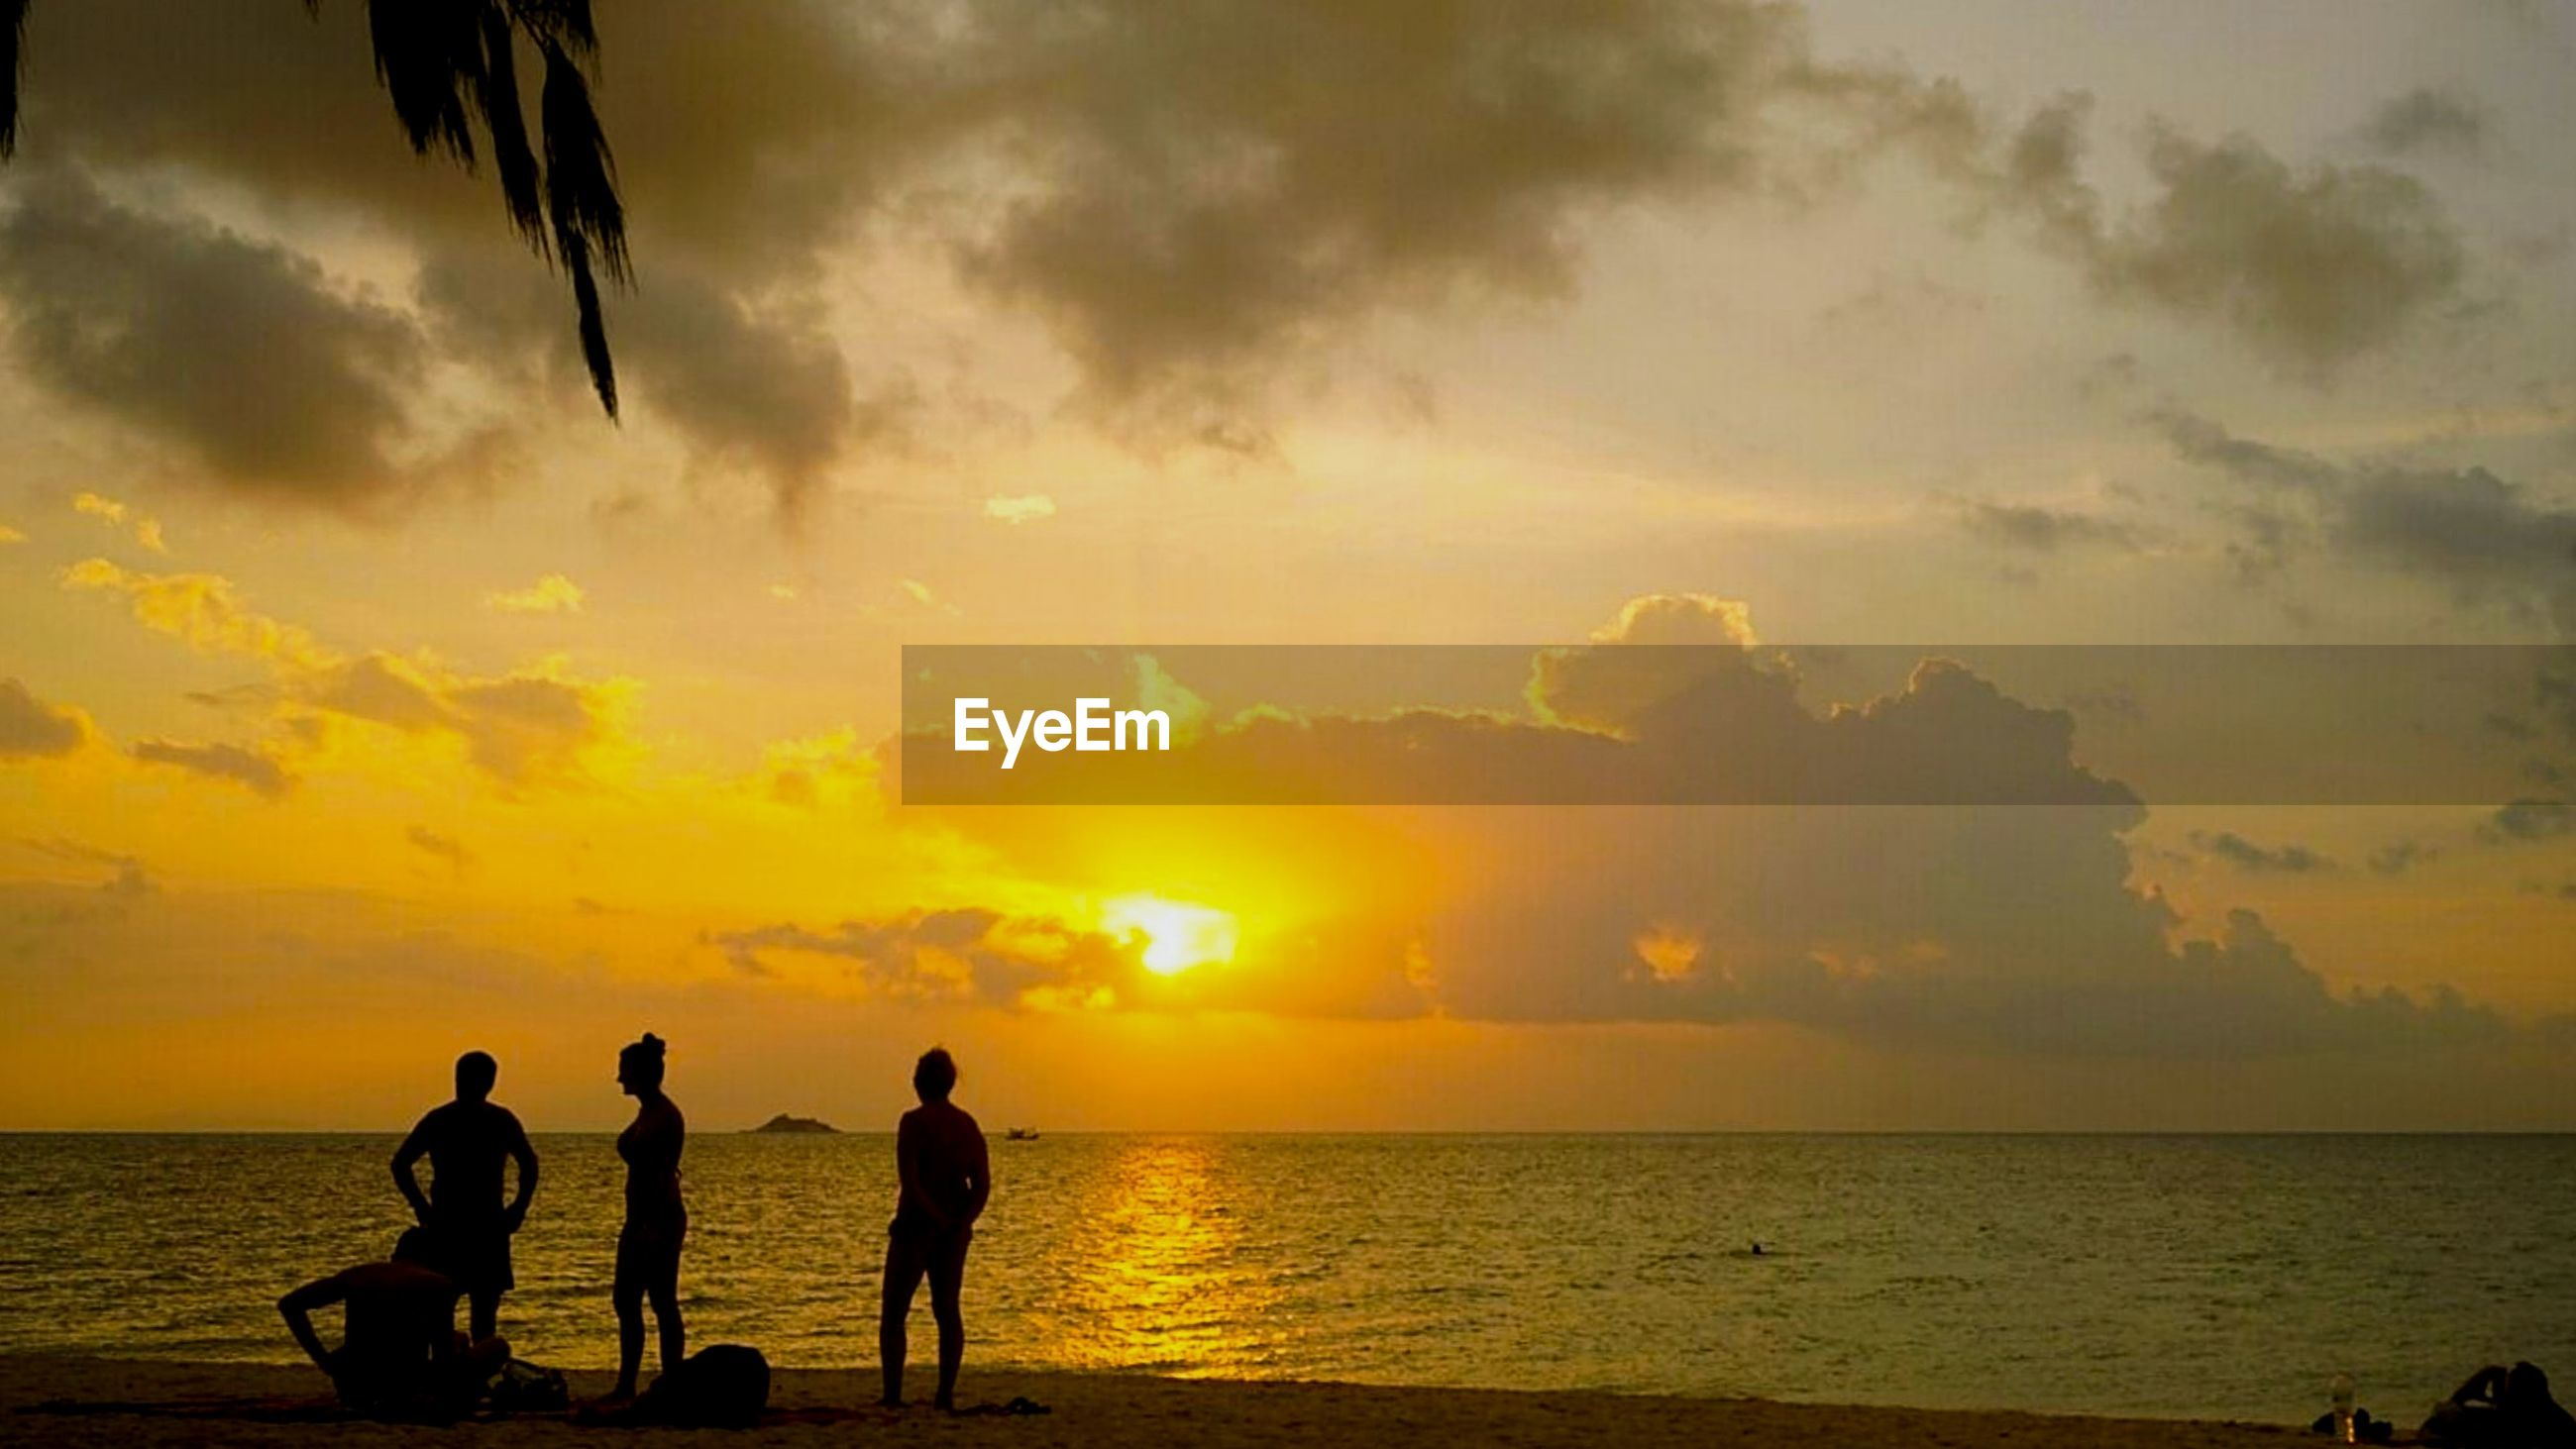 sunset, sea, silhouette, beach, nature, sky, water, real people, leisure activity, scenics, beauty in nature, togetherness, horizon over water, outdoors, vacations, tranquil scene, sand, standing, tranquility, lifestyles, full length, men, friendship, people, day, adult